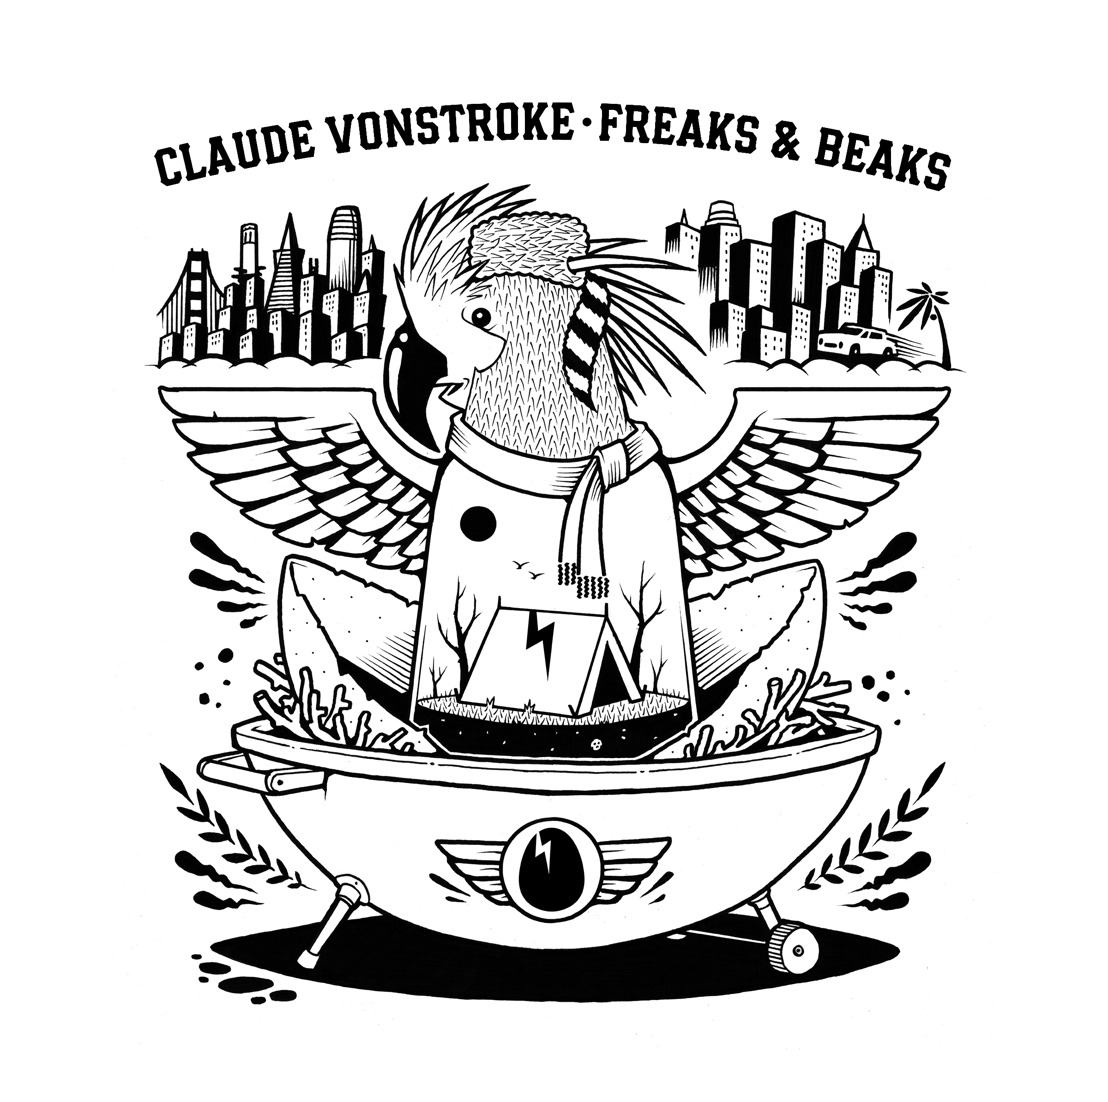 CLAUDE VONSTROKE CELEBRATES 15 YEARS OF DIRTYBIRD, ANNOUNCES NEW ALBUM 'FREAKS & BEAKS', OUT FEBRUARY 21st